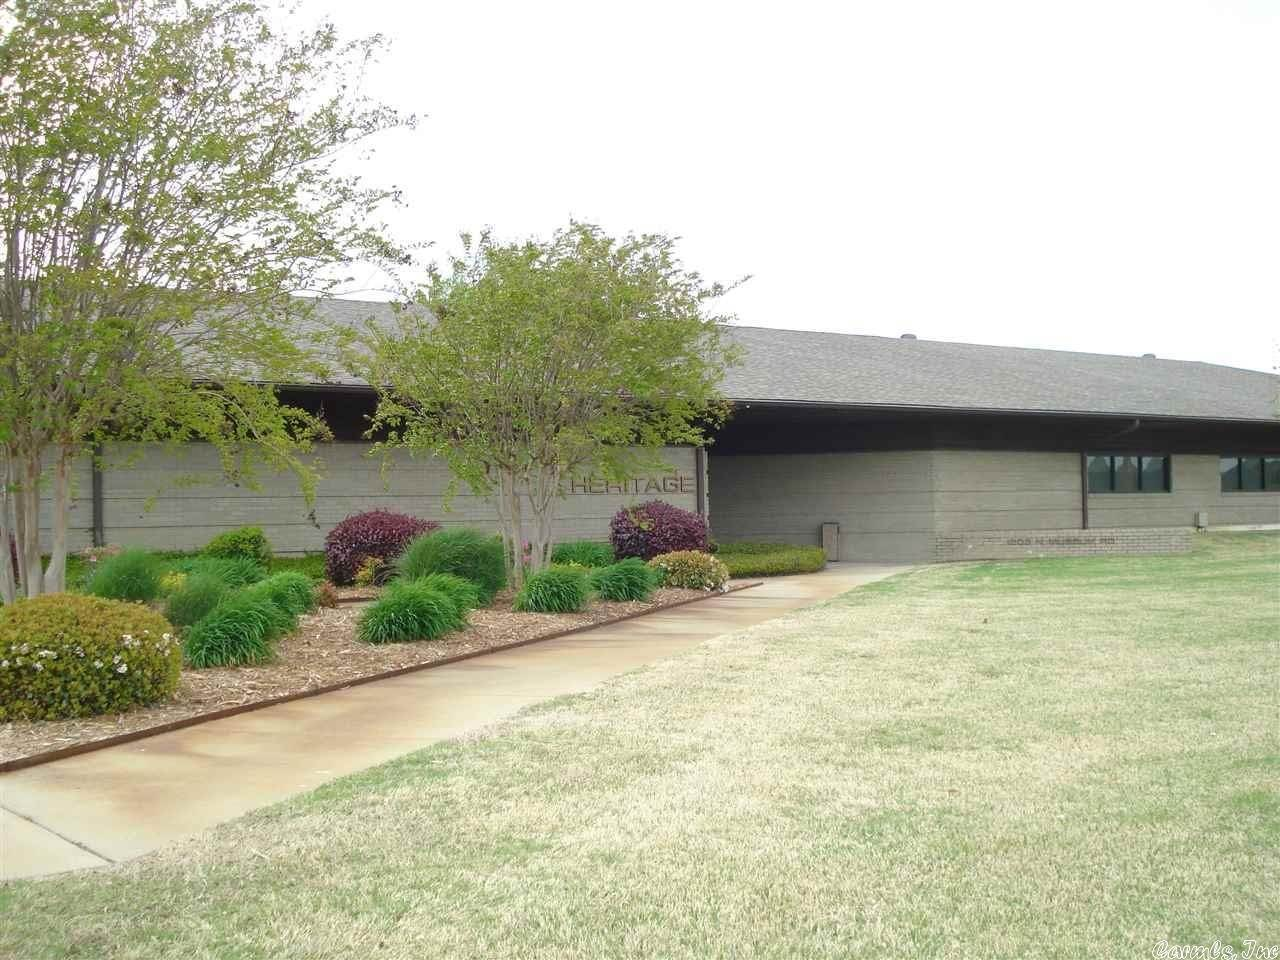 Commercial / Industrial for Sale at 1203 N museum Conway, Arkansas 72032 United States